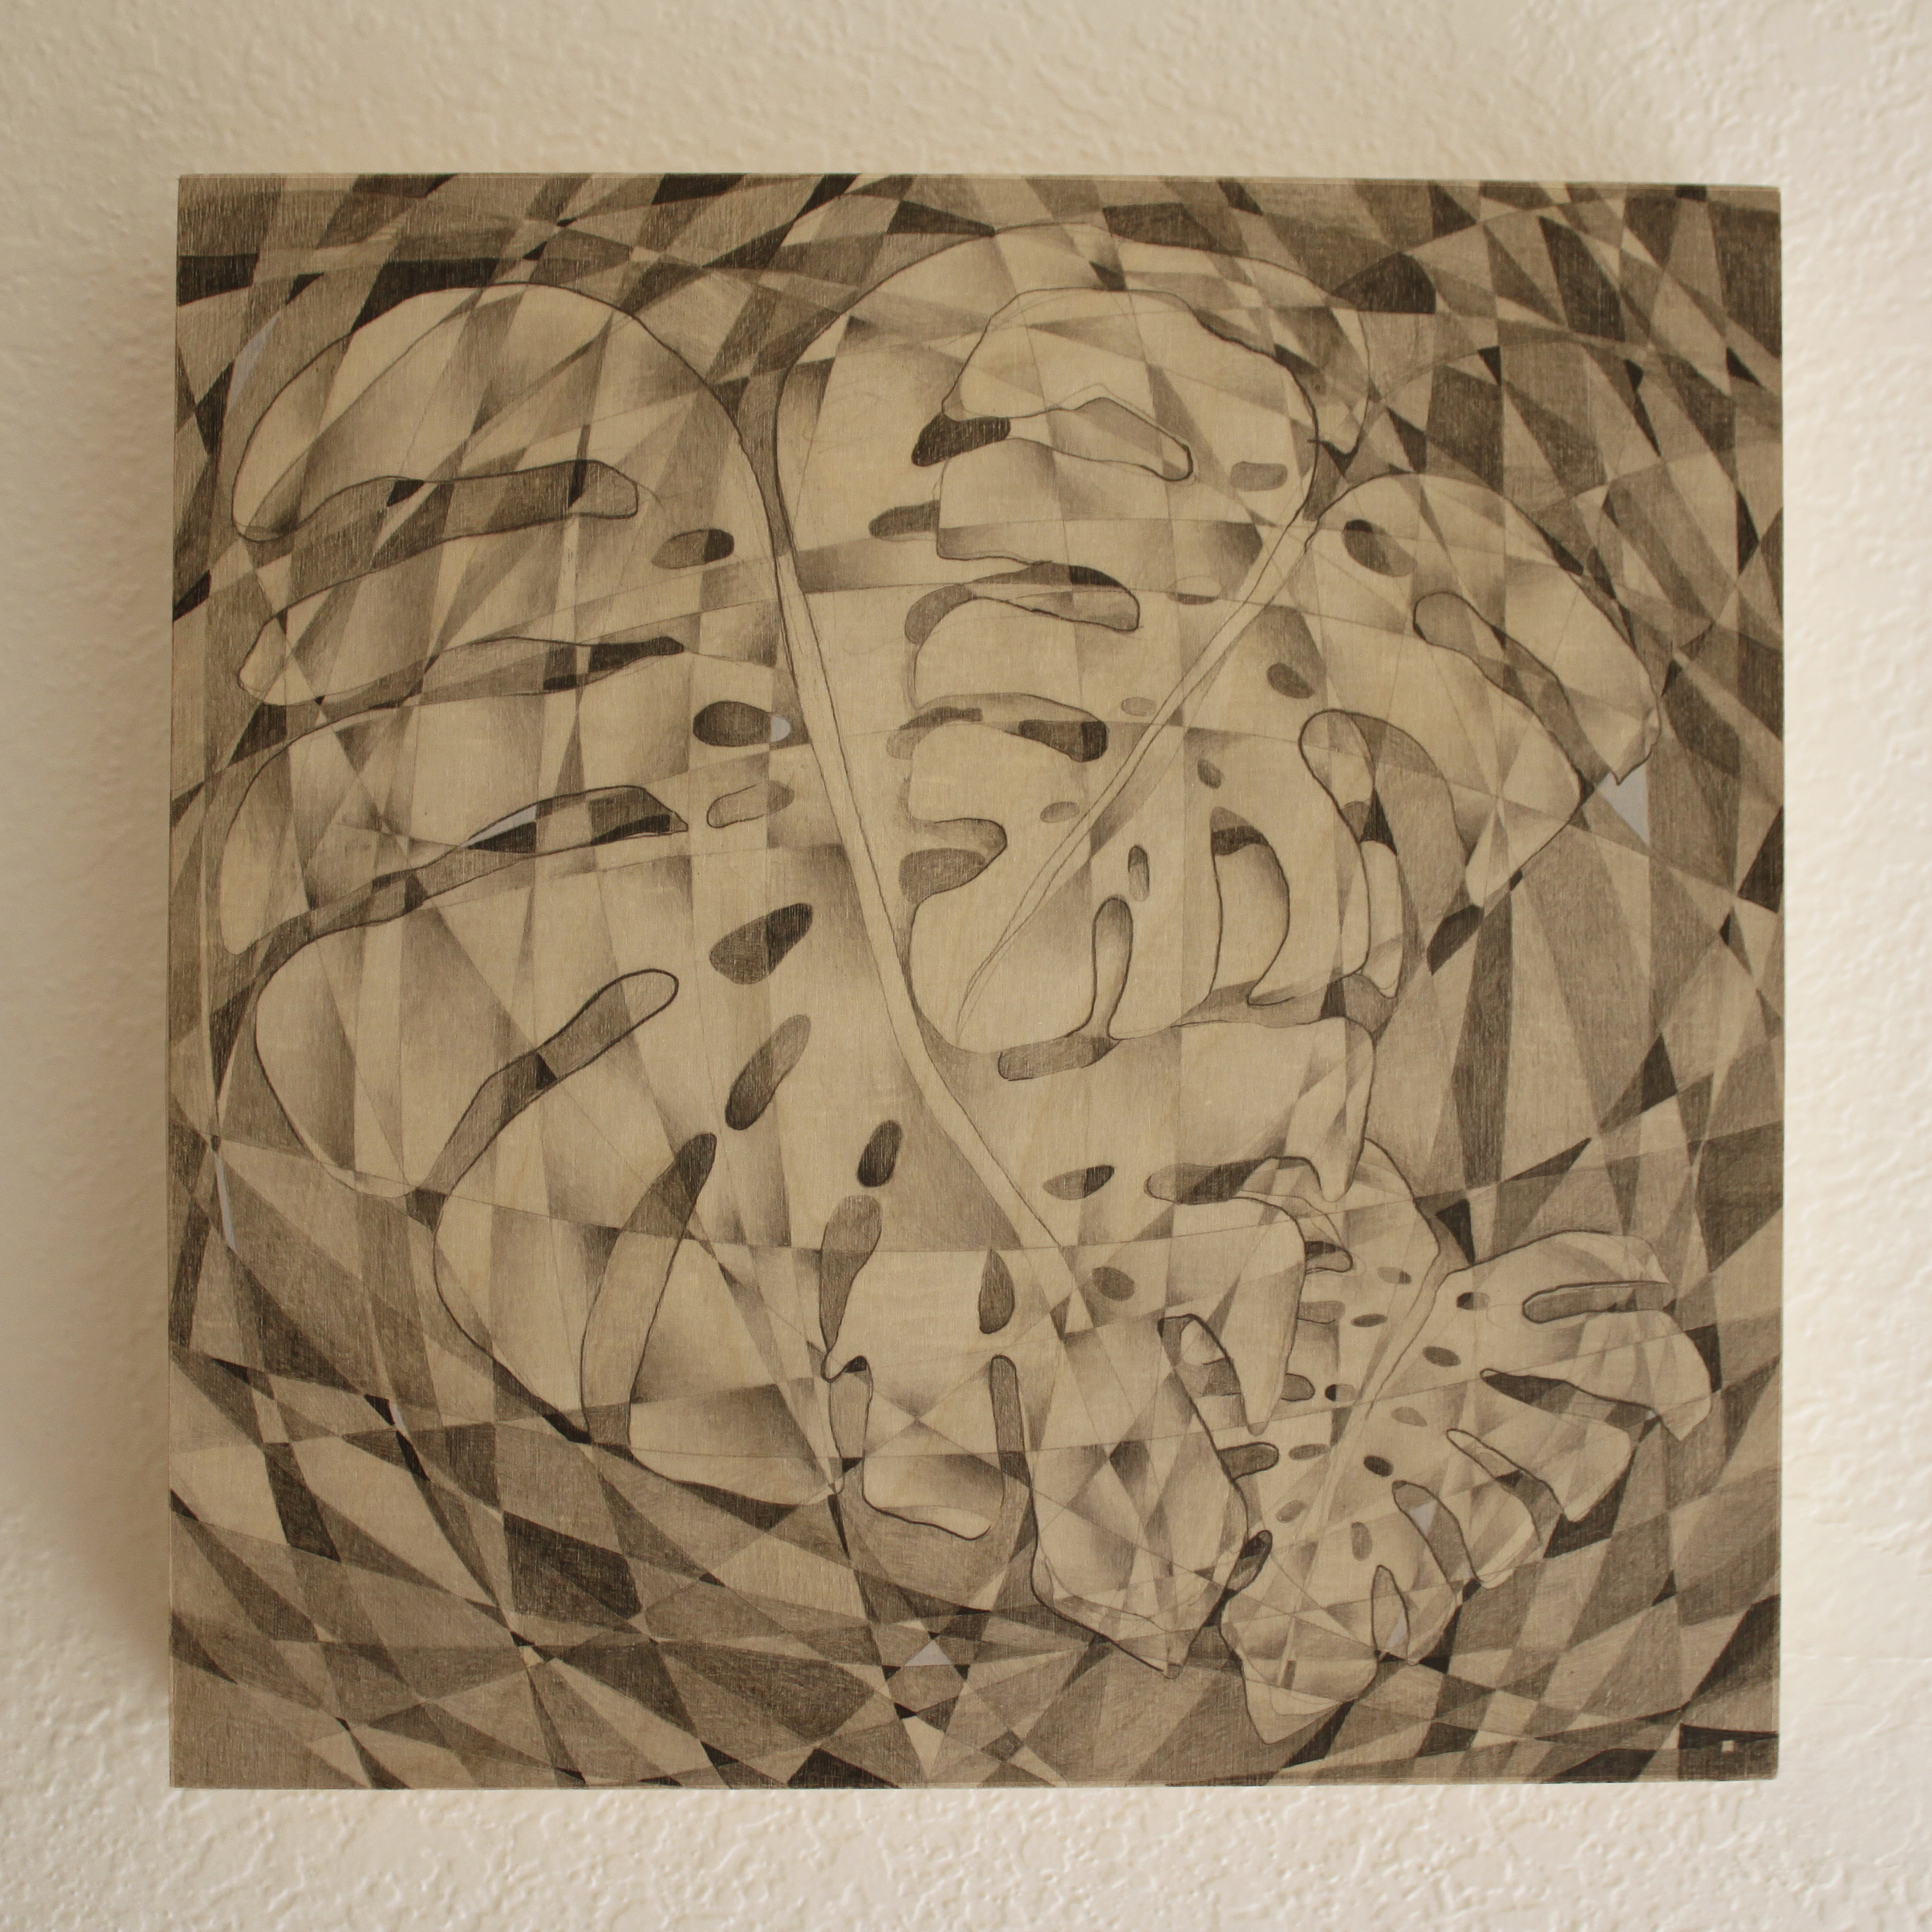 Monstera Deliciosa Pencil on Panel 8in x 8in 2015 Boz Schurr.jpg